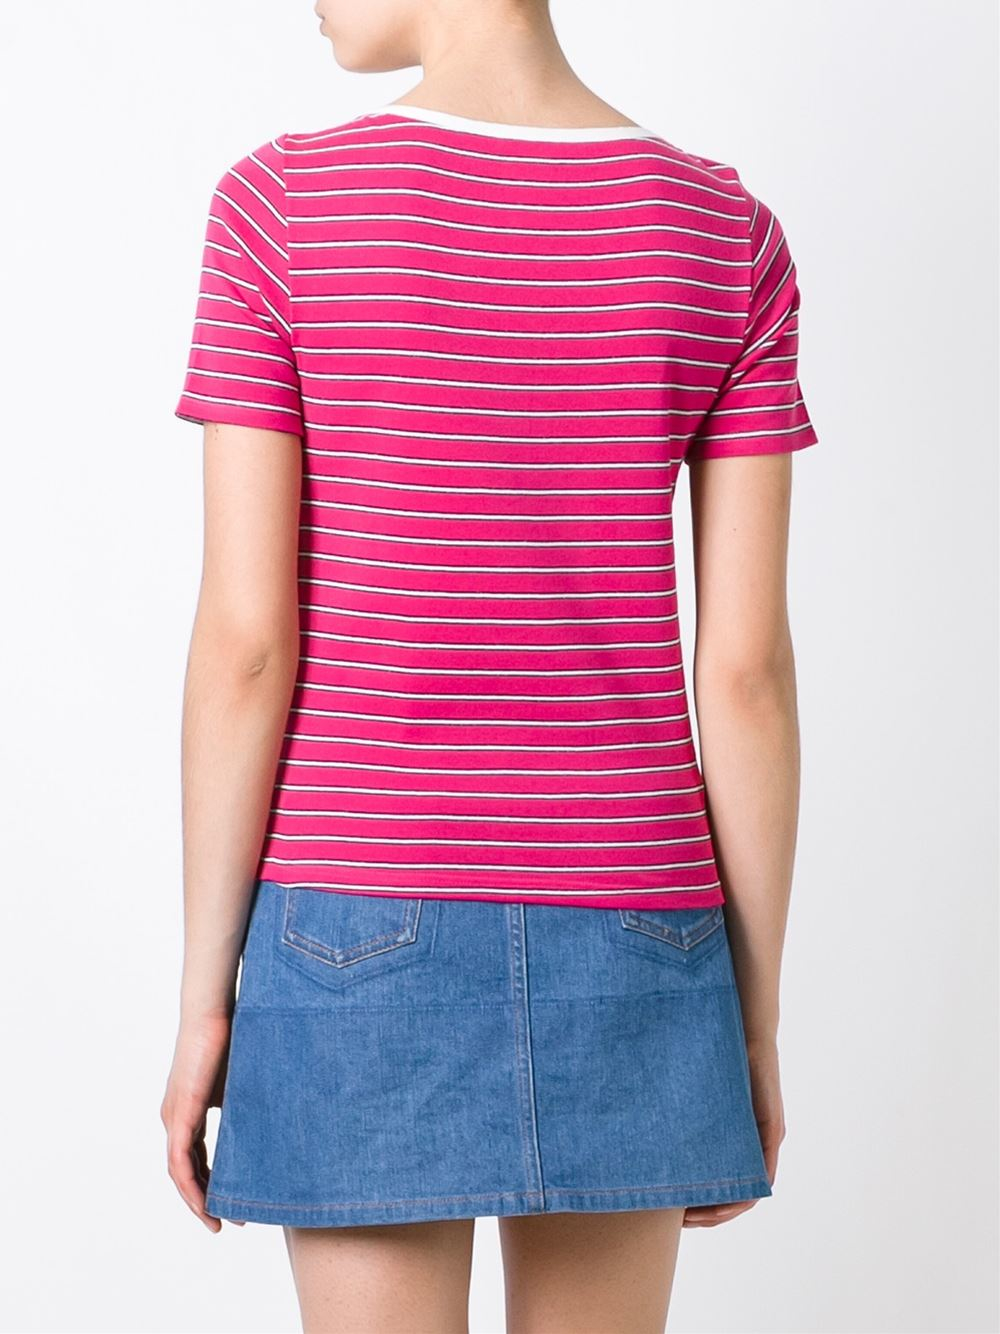 Sonia by sonia rykiel striped boat neck t shirt in pink for Purple and black striped t shirt